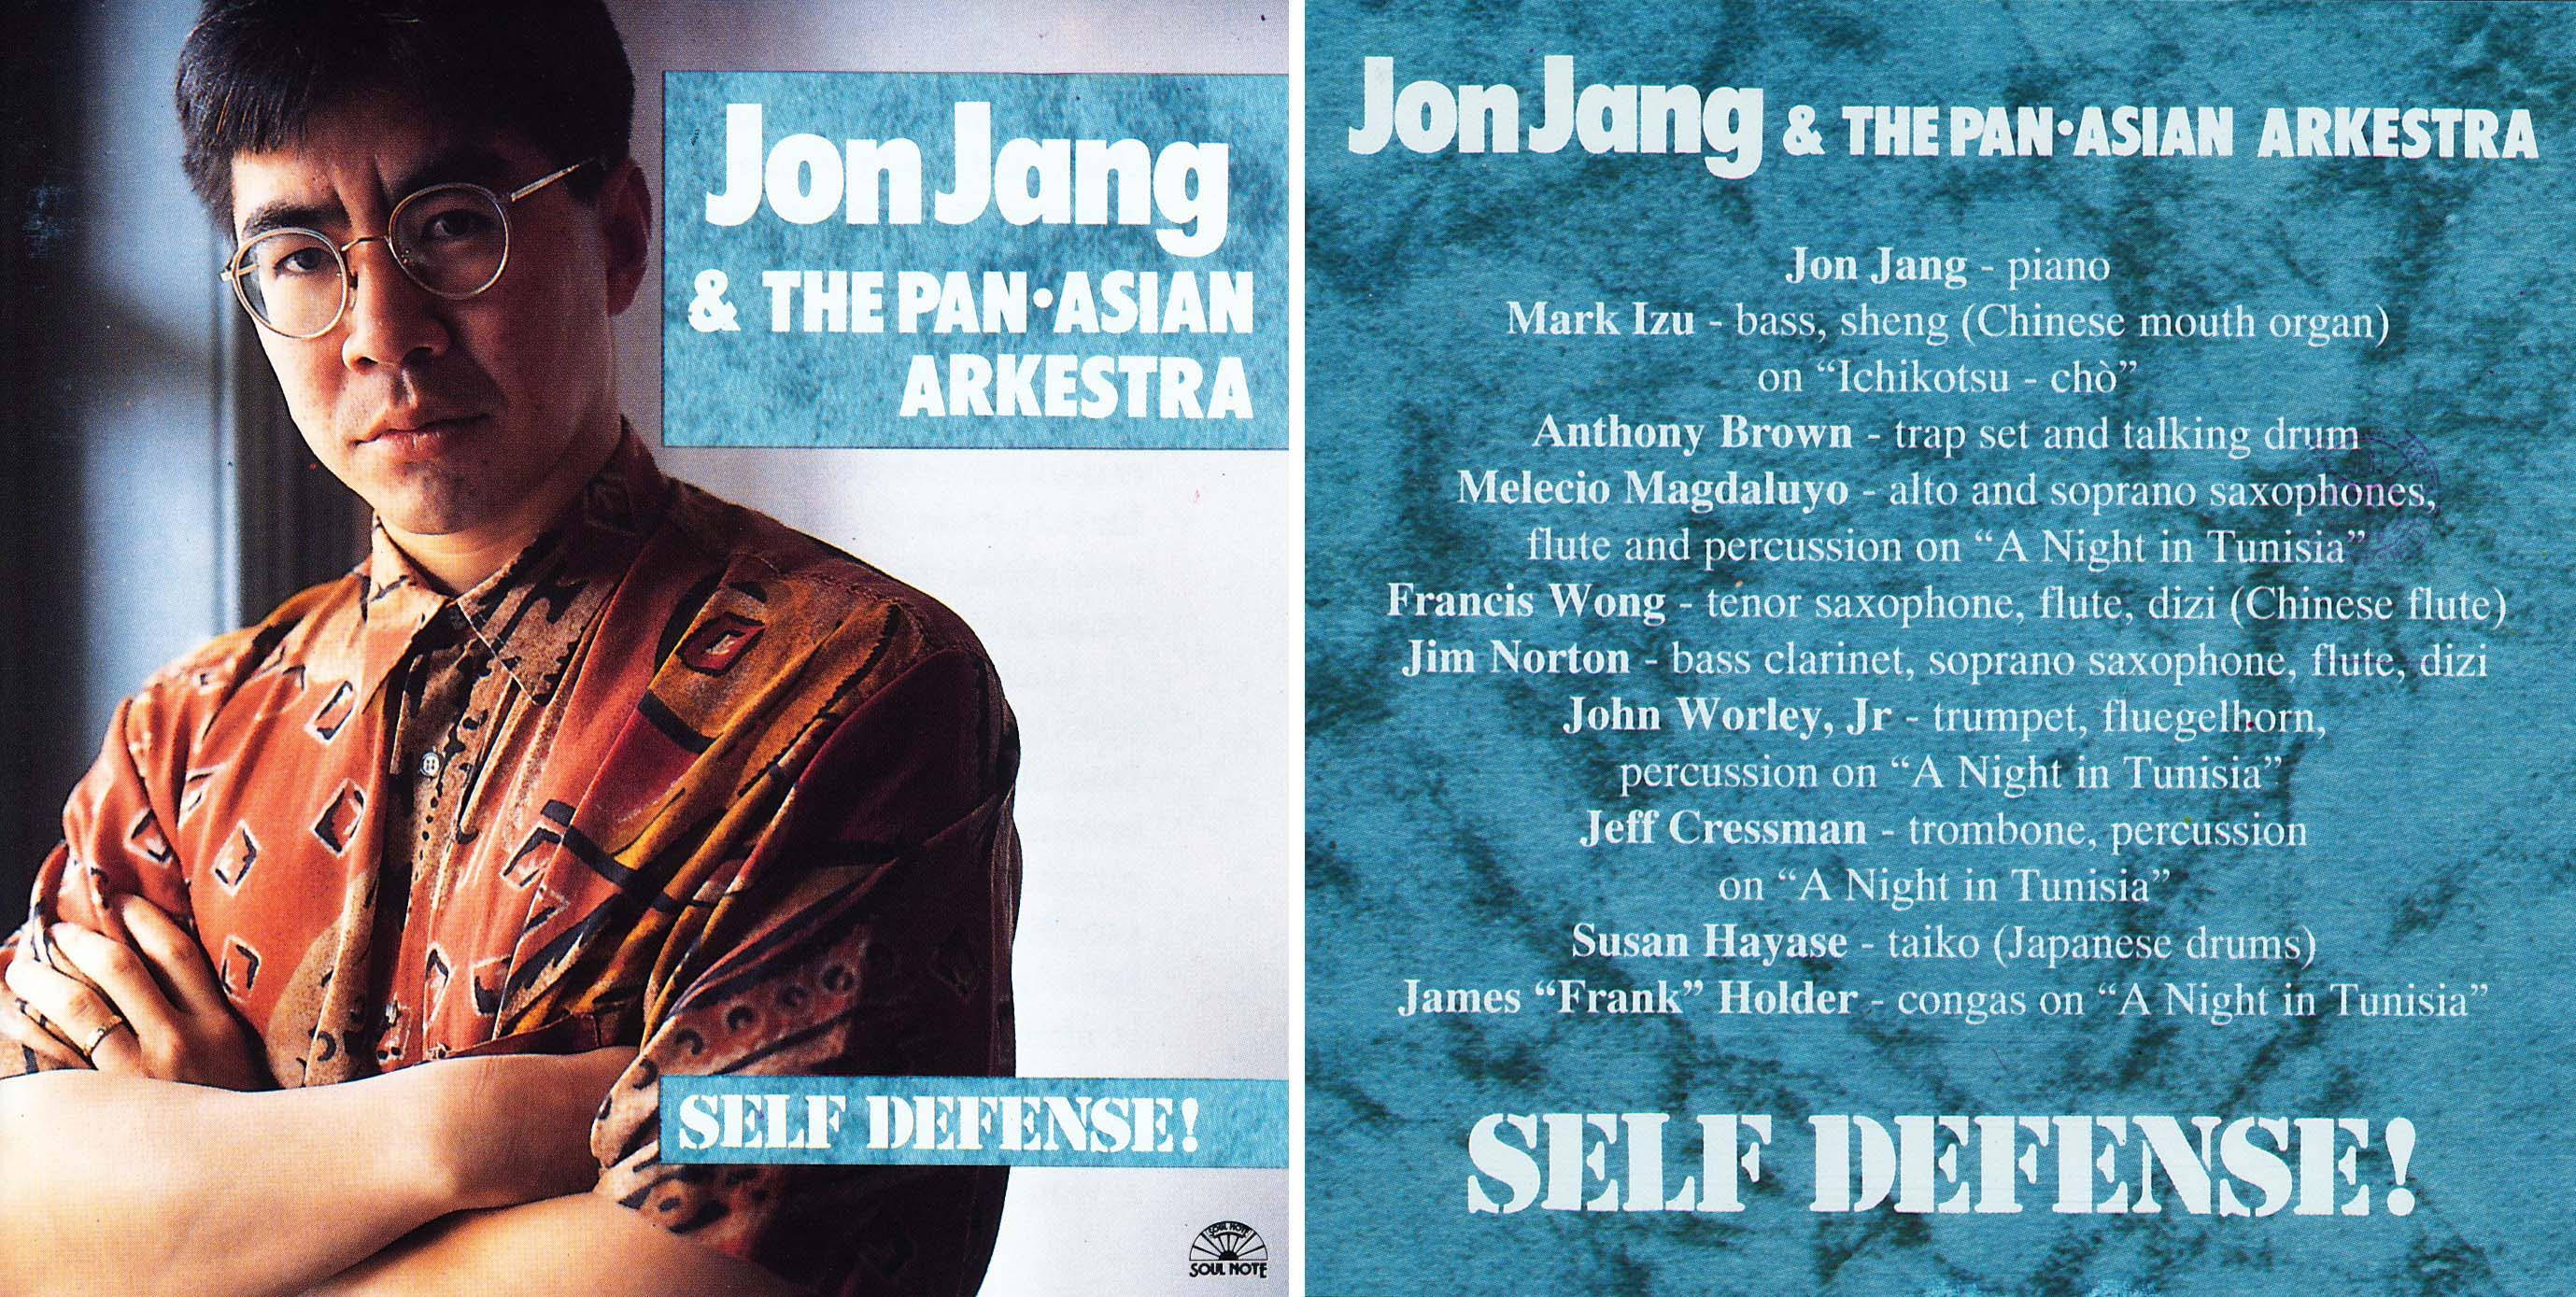 Jon Jang & the Pan-Asian Arkestra | Self Defense